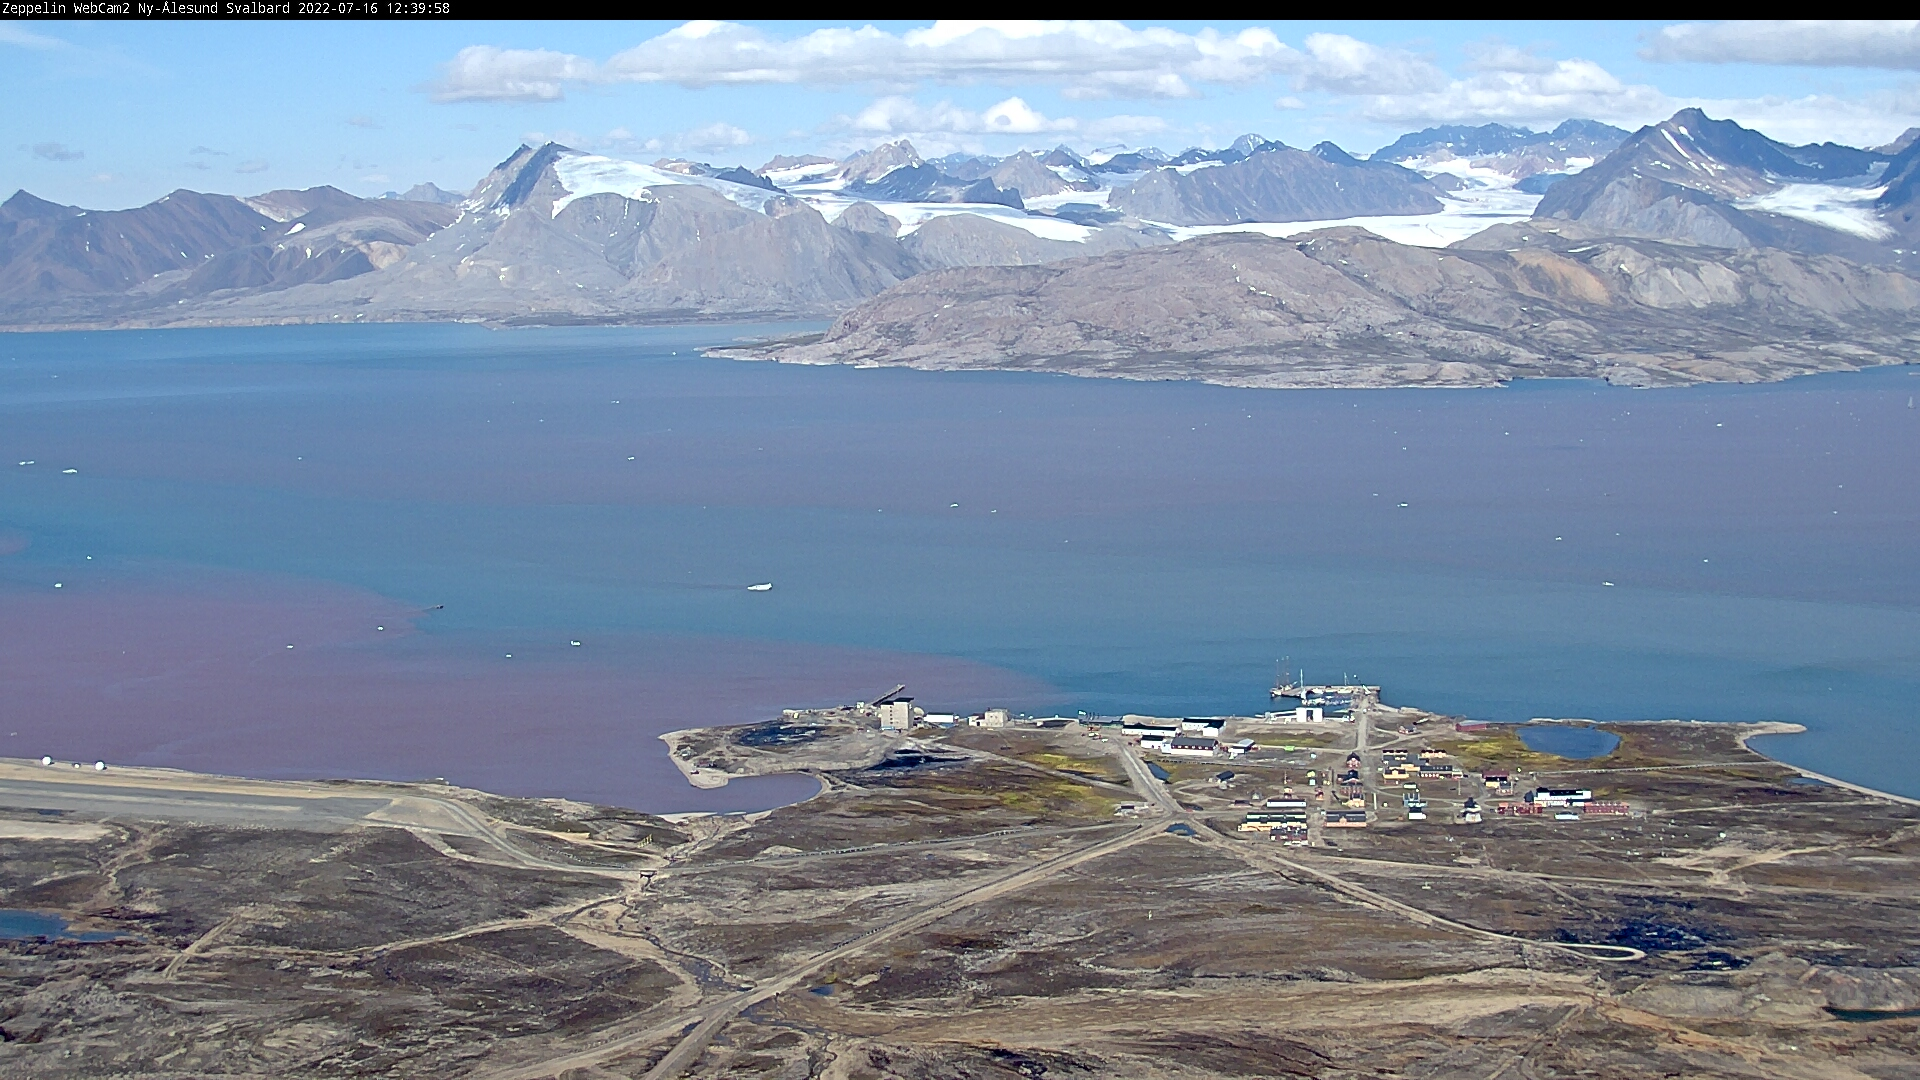 Web Camera is located in Norway.